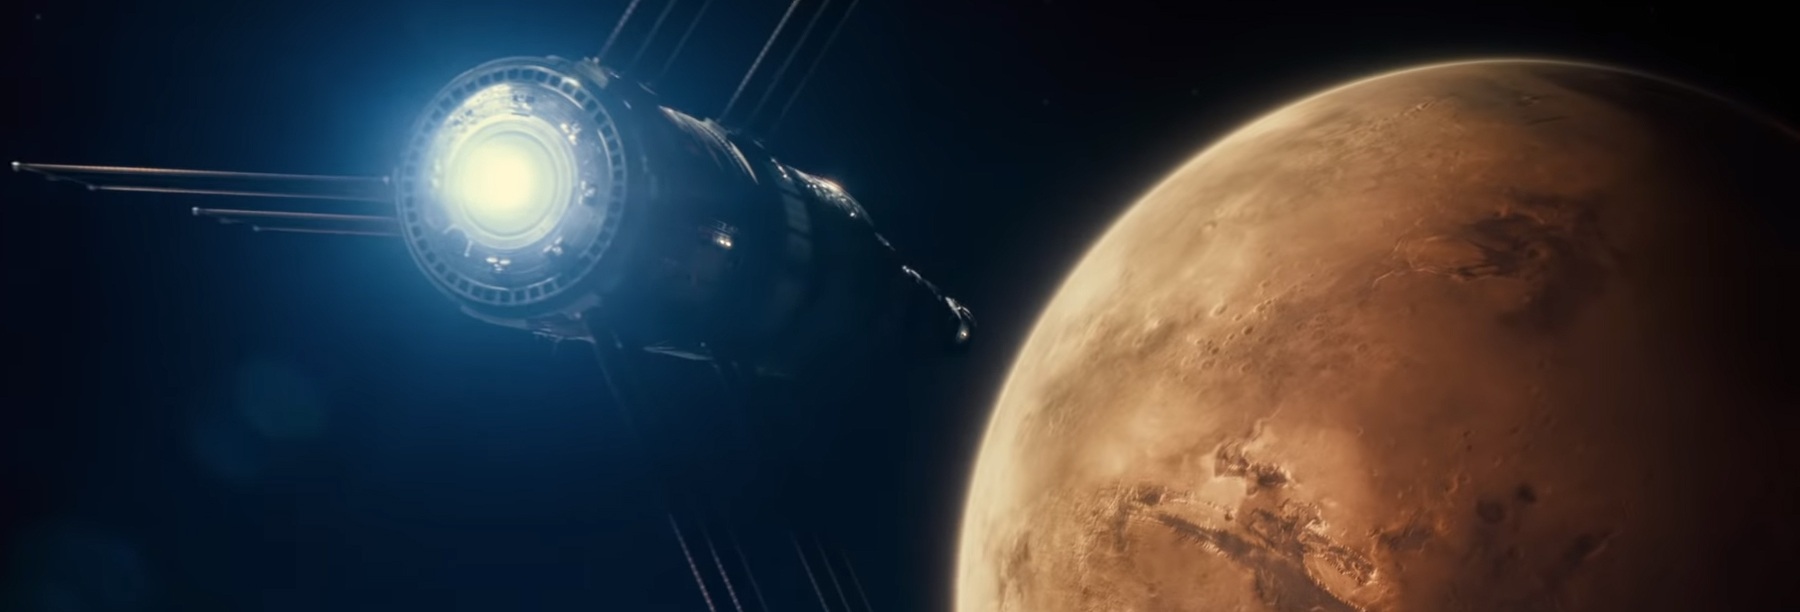 Ad Astra. Image Credit: 20th Century Fox.